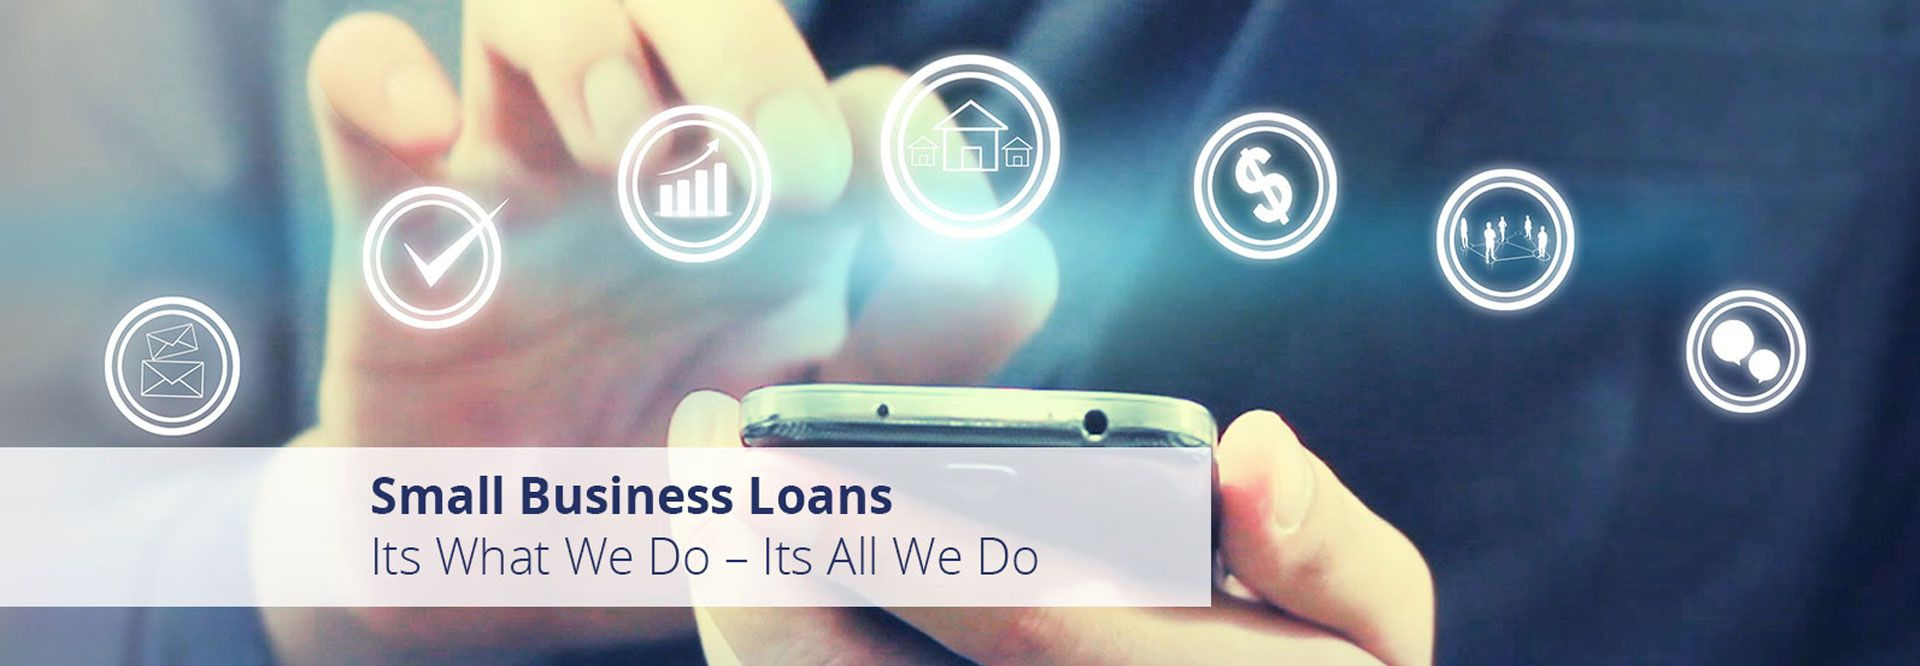 Small Business Loans Small Business Loans Business Loans Payday Loans